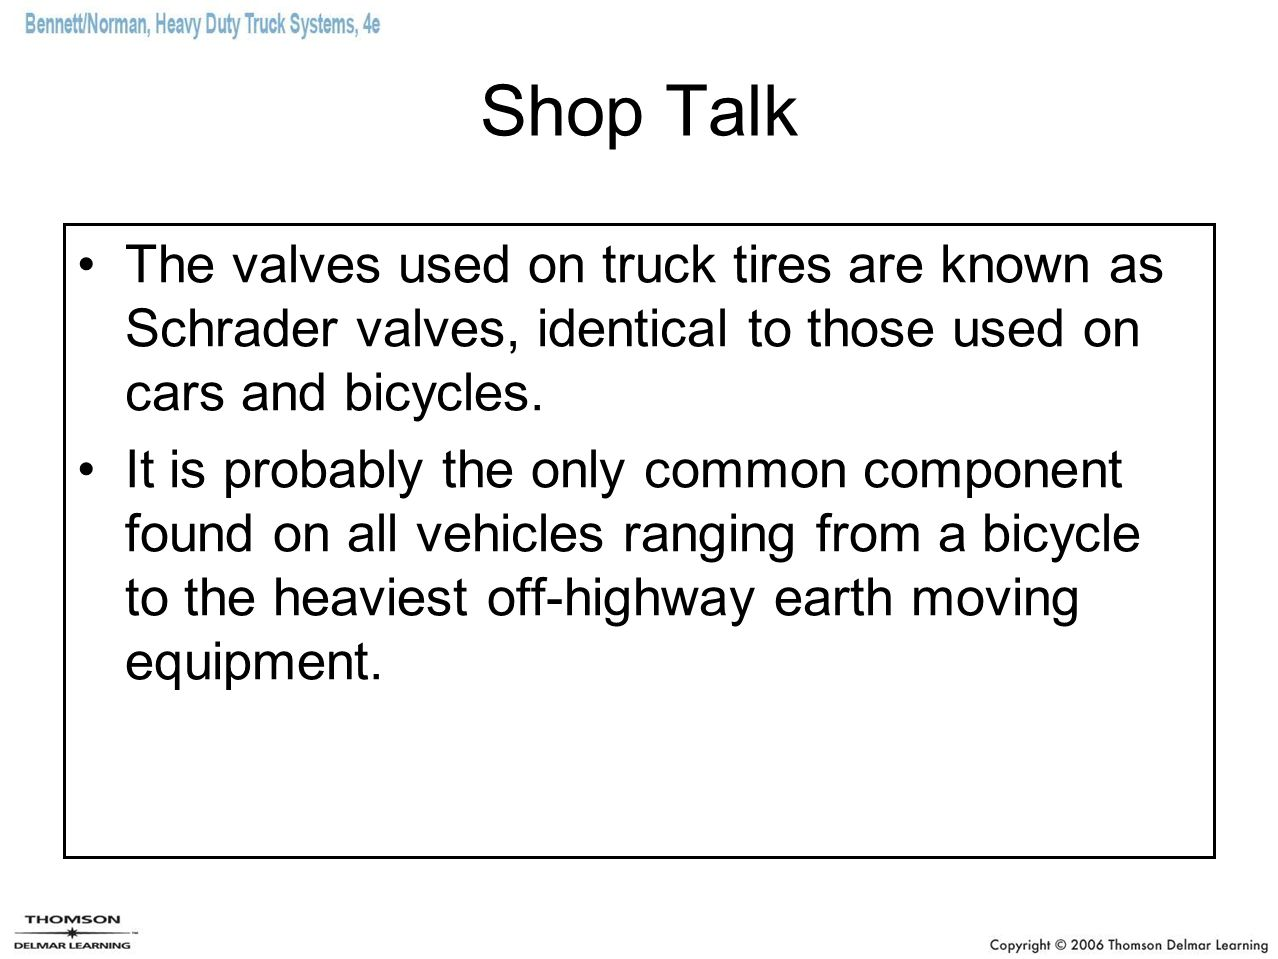 Shop Talk The valves used on truck tires are known as Schrader valves, identical to those used on cars and bicycles.